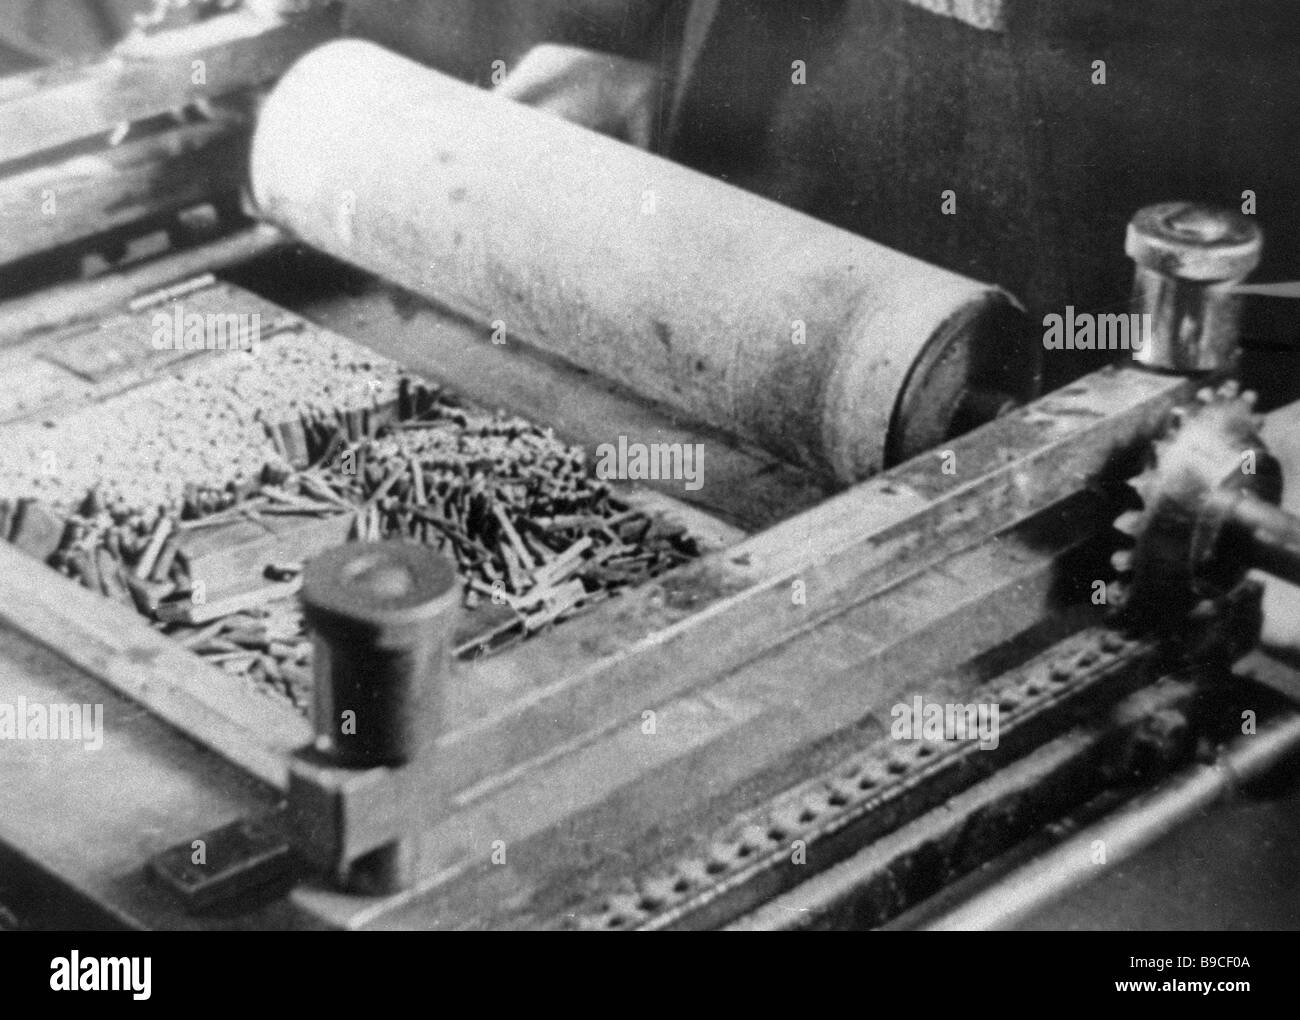 The maiden issues of the Cina Lettish revolutionary newspaper came off this printing press early in the 20th century - Stock Image